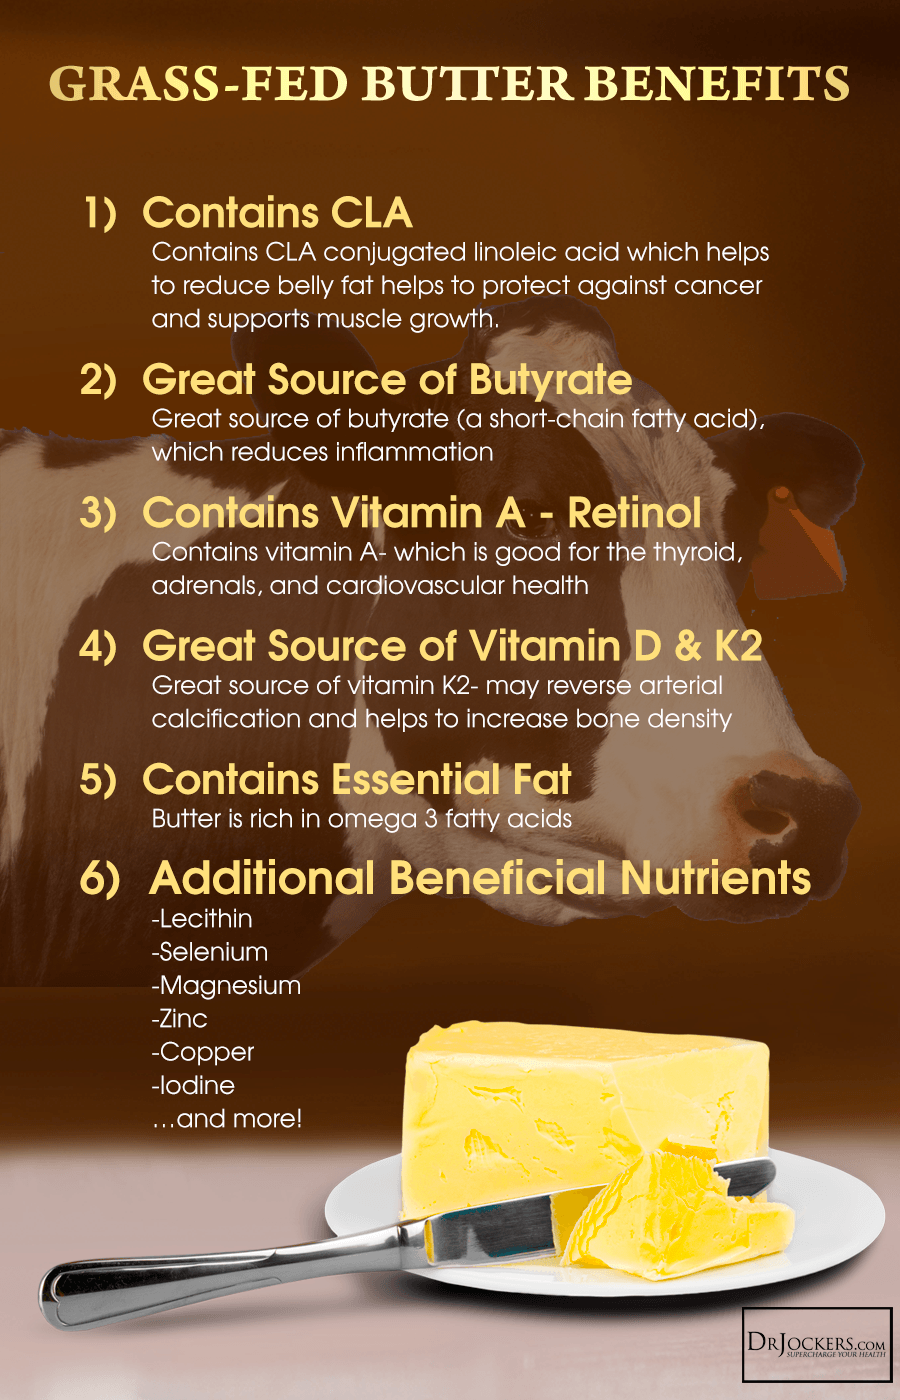 6 Health Benefits of Grass-Fed Butter